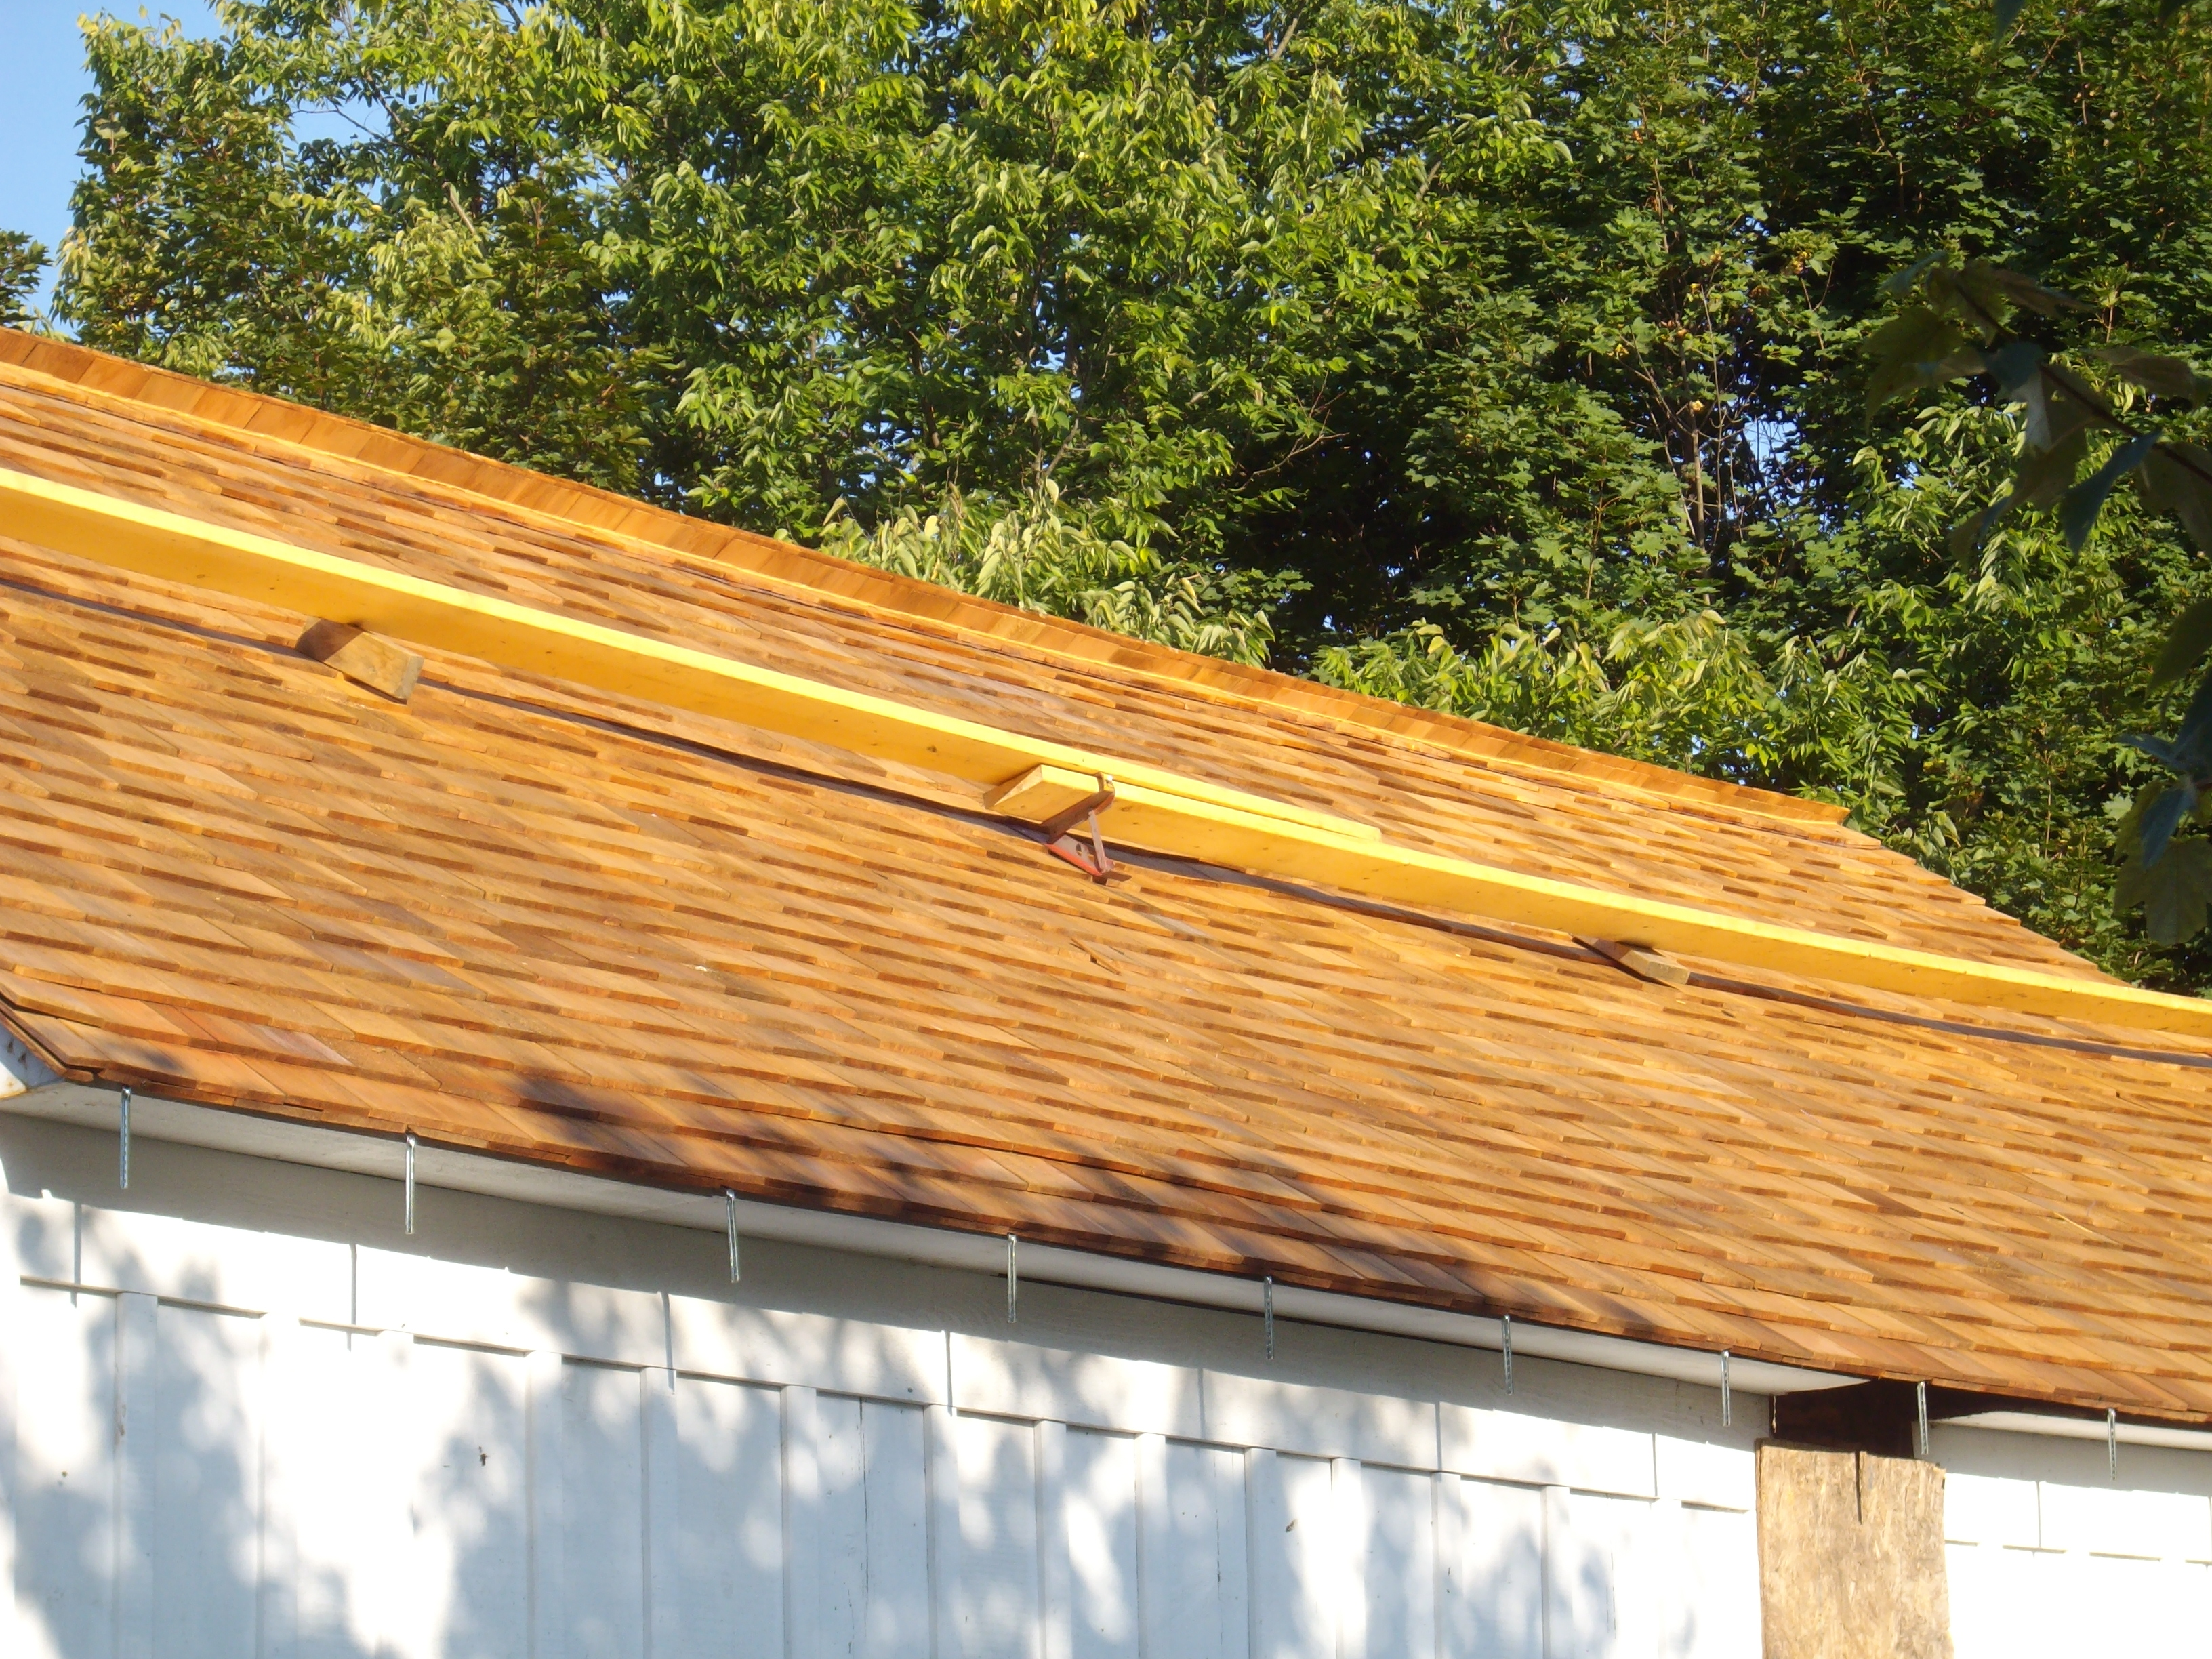 New wood shingle roof